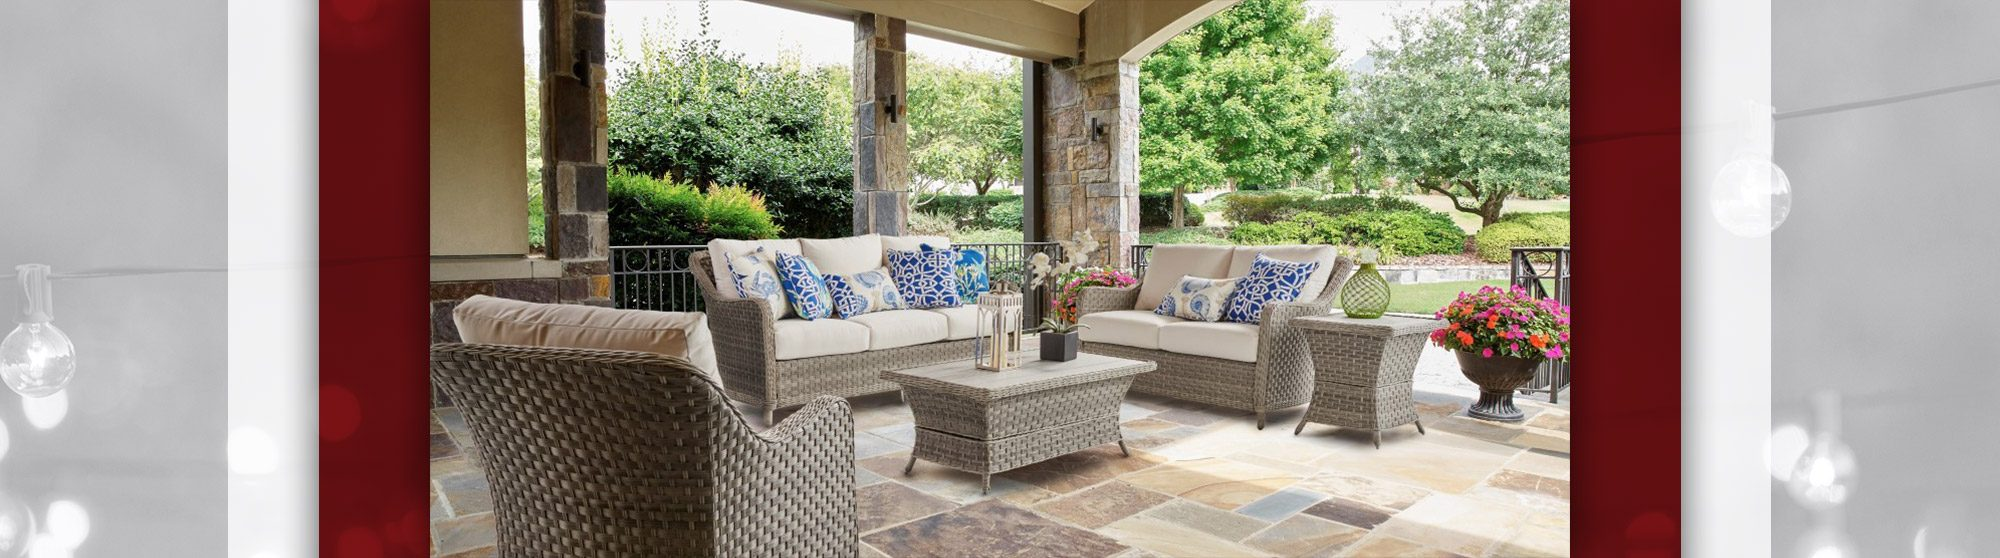 outdoor furniture alpharetta outdoor wicker furniture wrought iron patio furniture ga parru0027s furniture